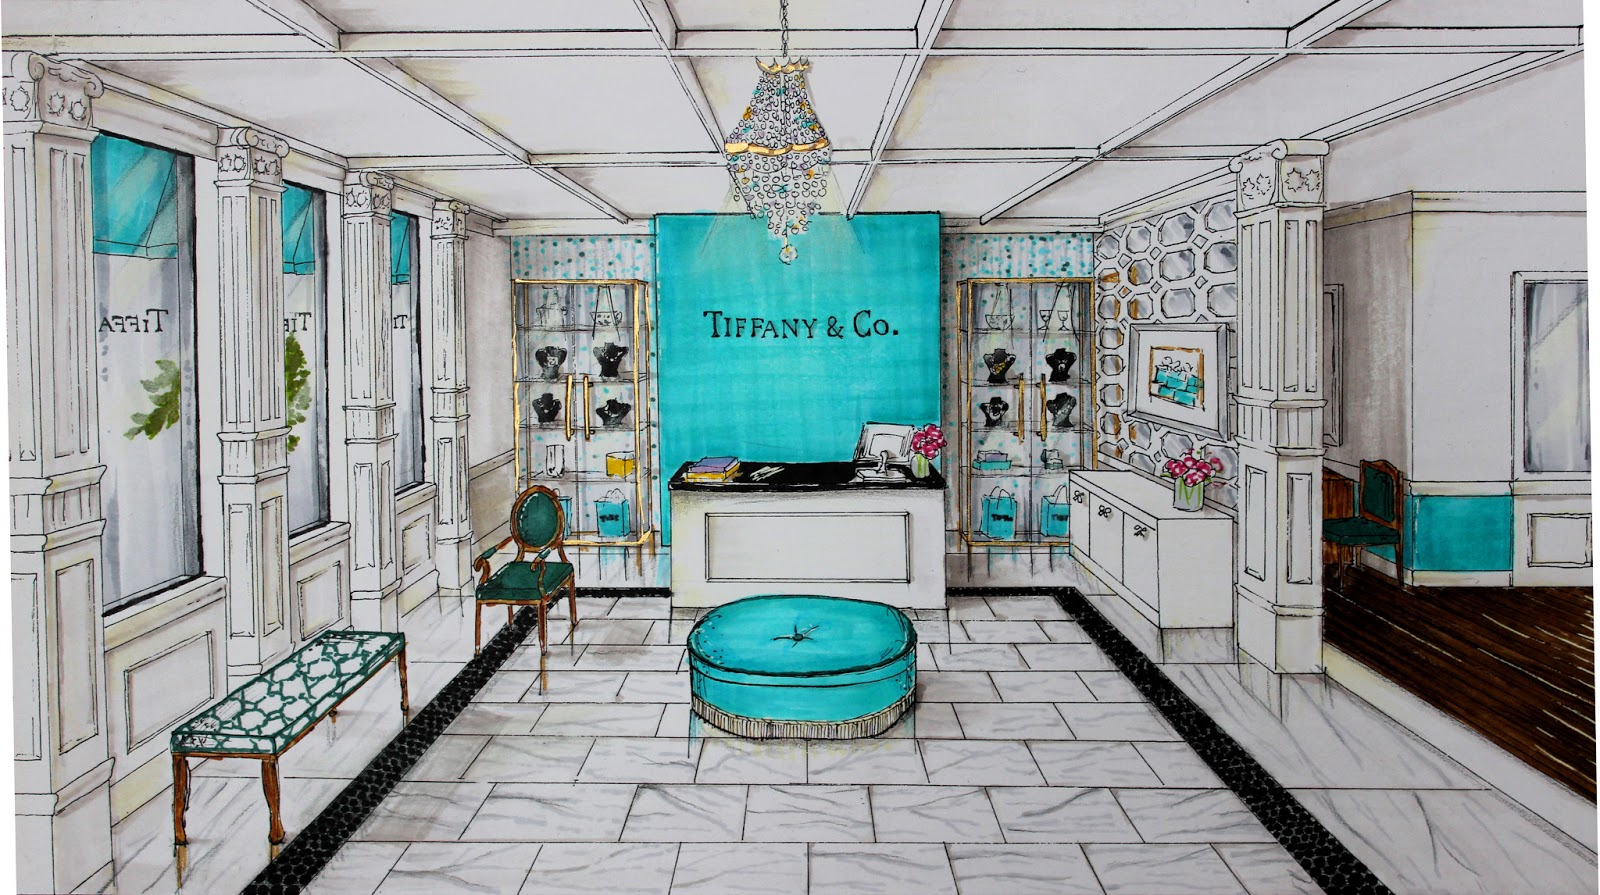 tiffany co reception completed project house interior design